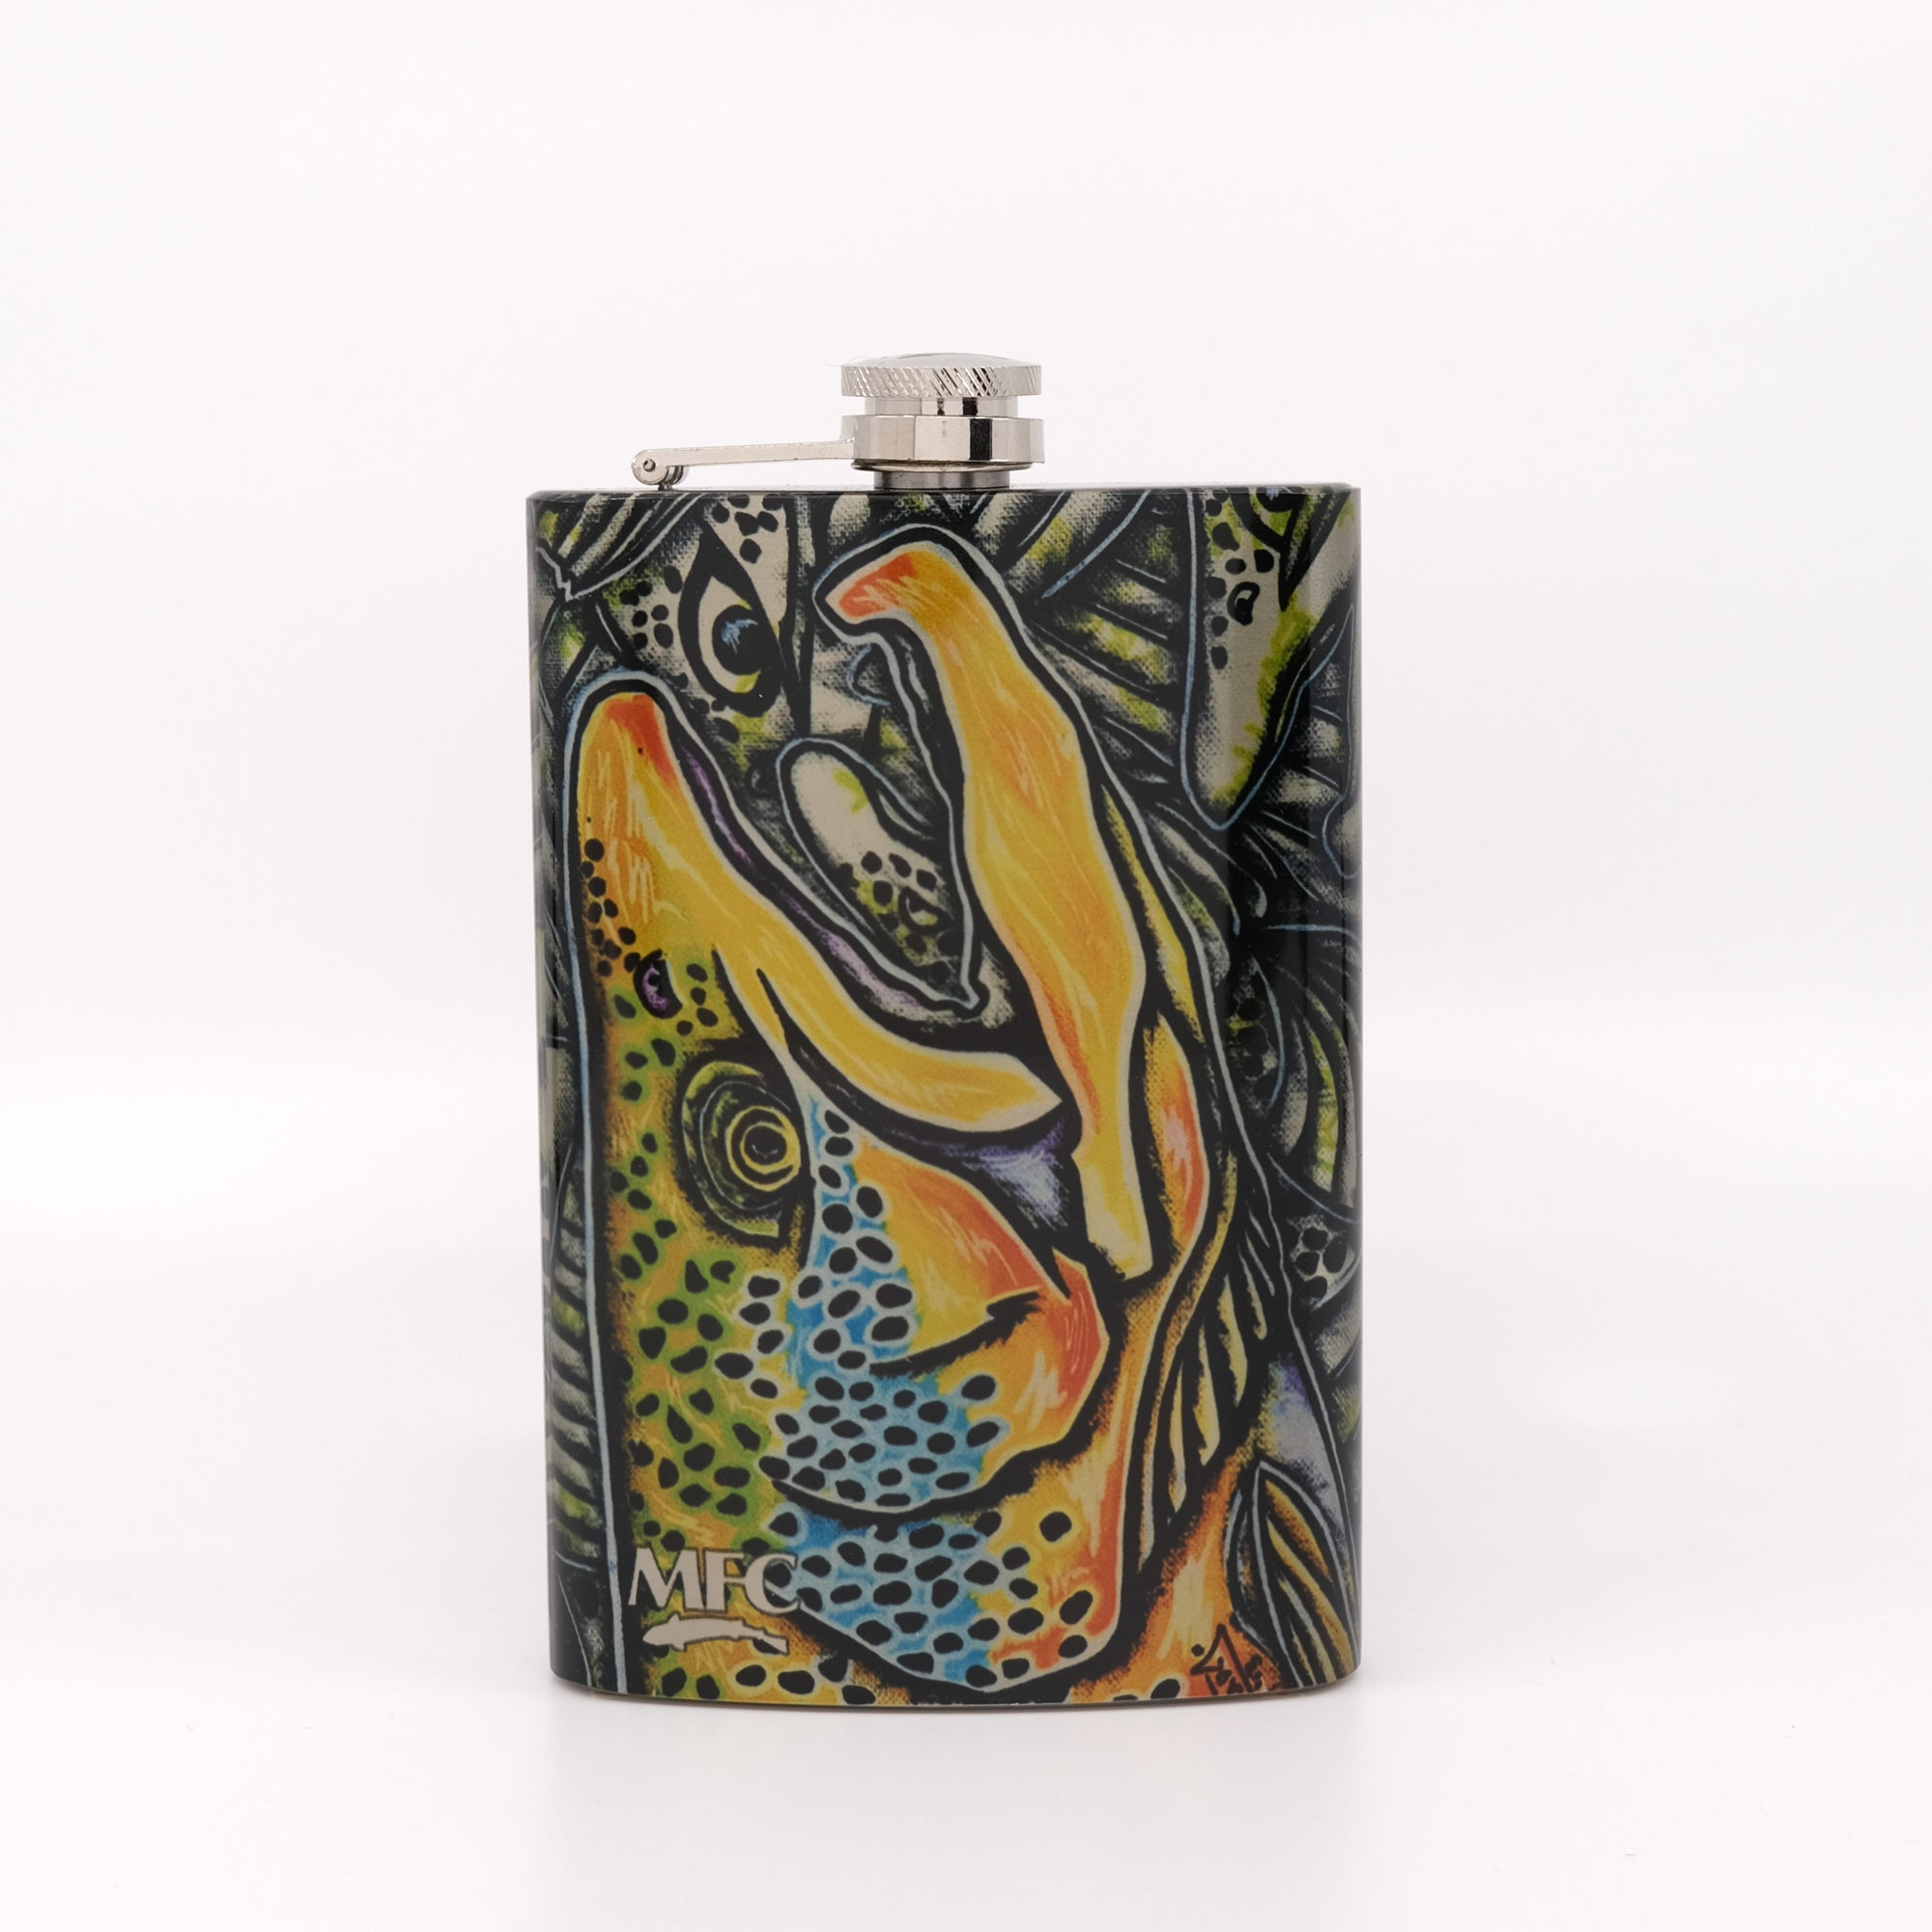 MFC Hip Flask - Estrada's Brown Trout Graffiti